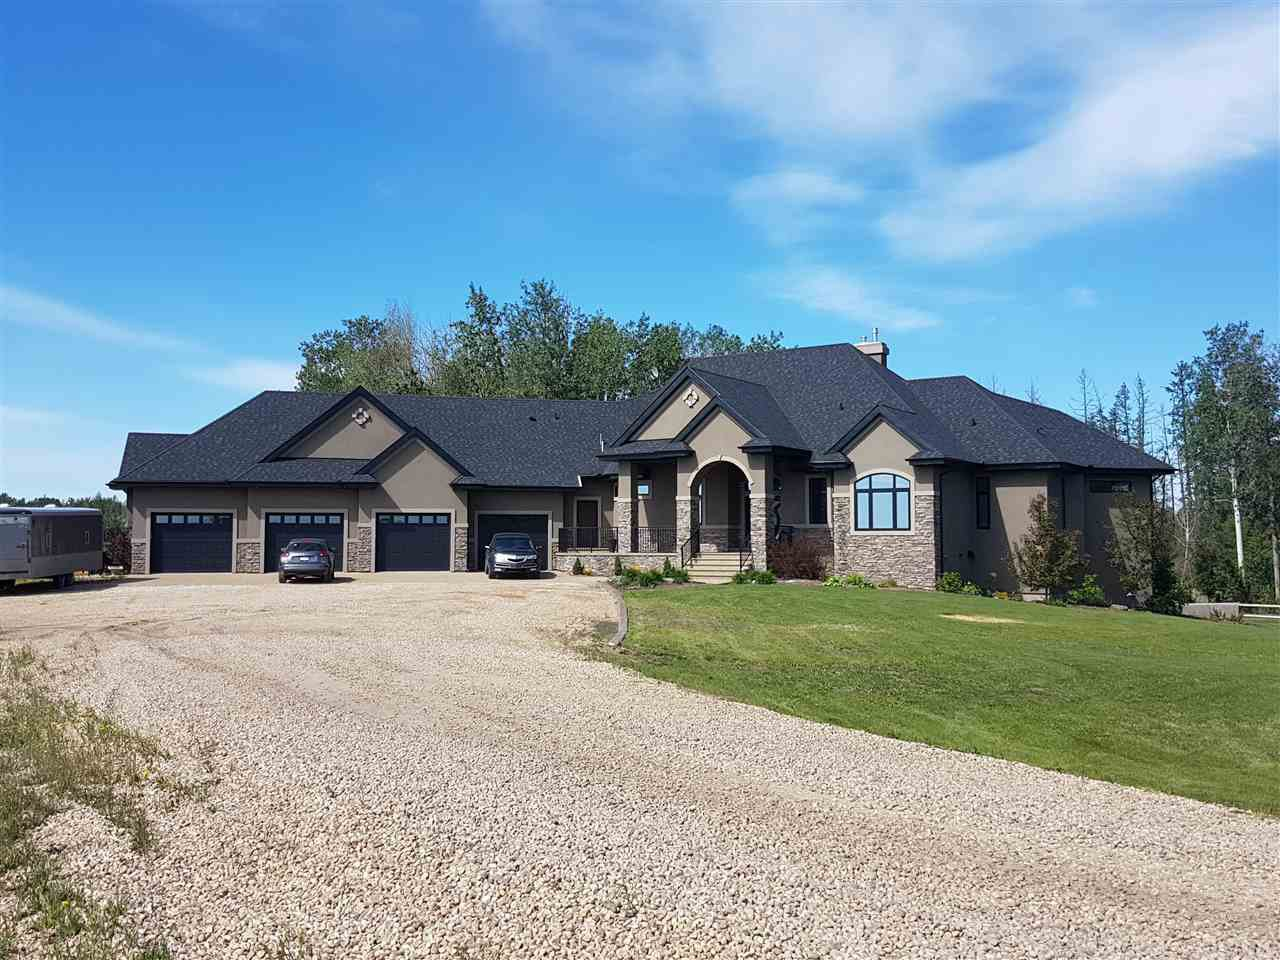 Main Photo: 0 27327 TWP RD 540: Rural Parkland County House for sale : MLS®# E4140770